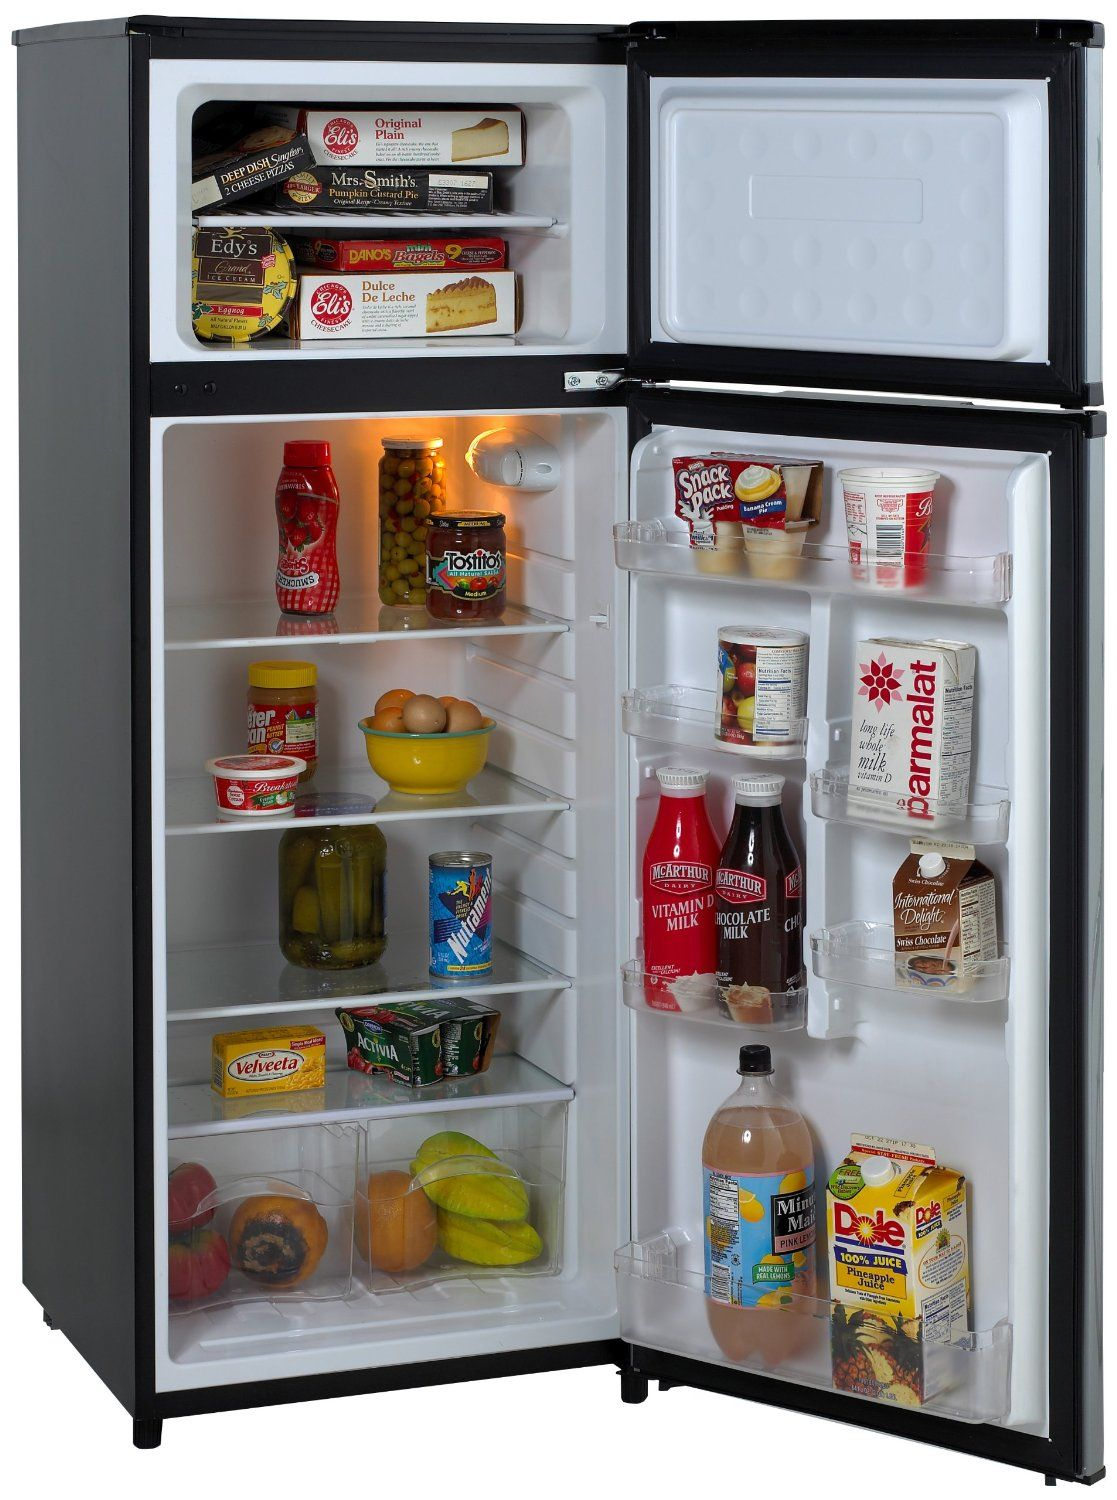 What is a so-called midsized refrigerator? These are the ...